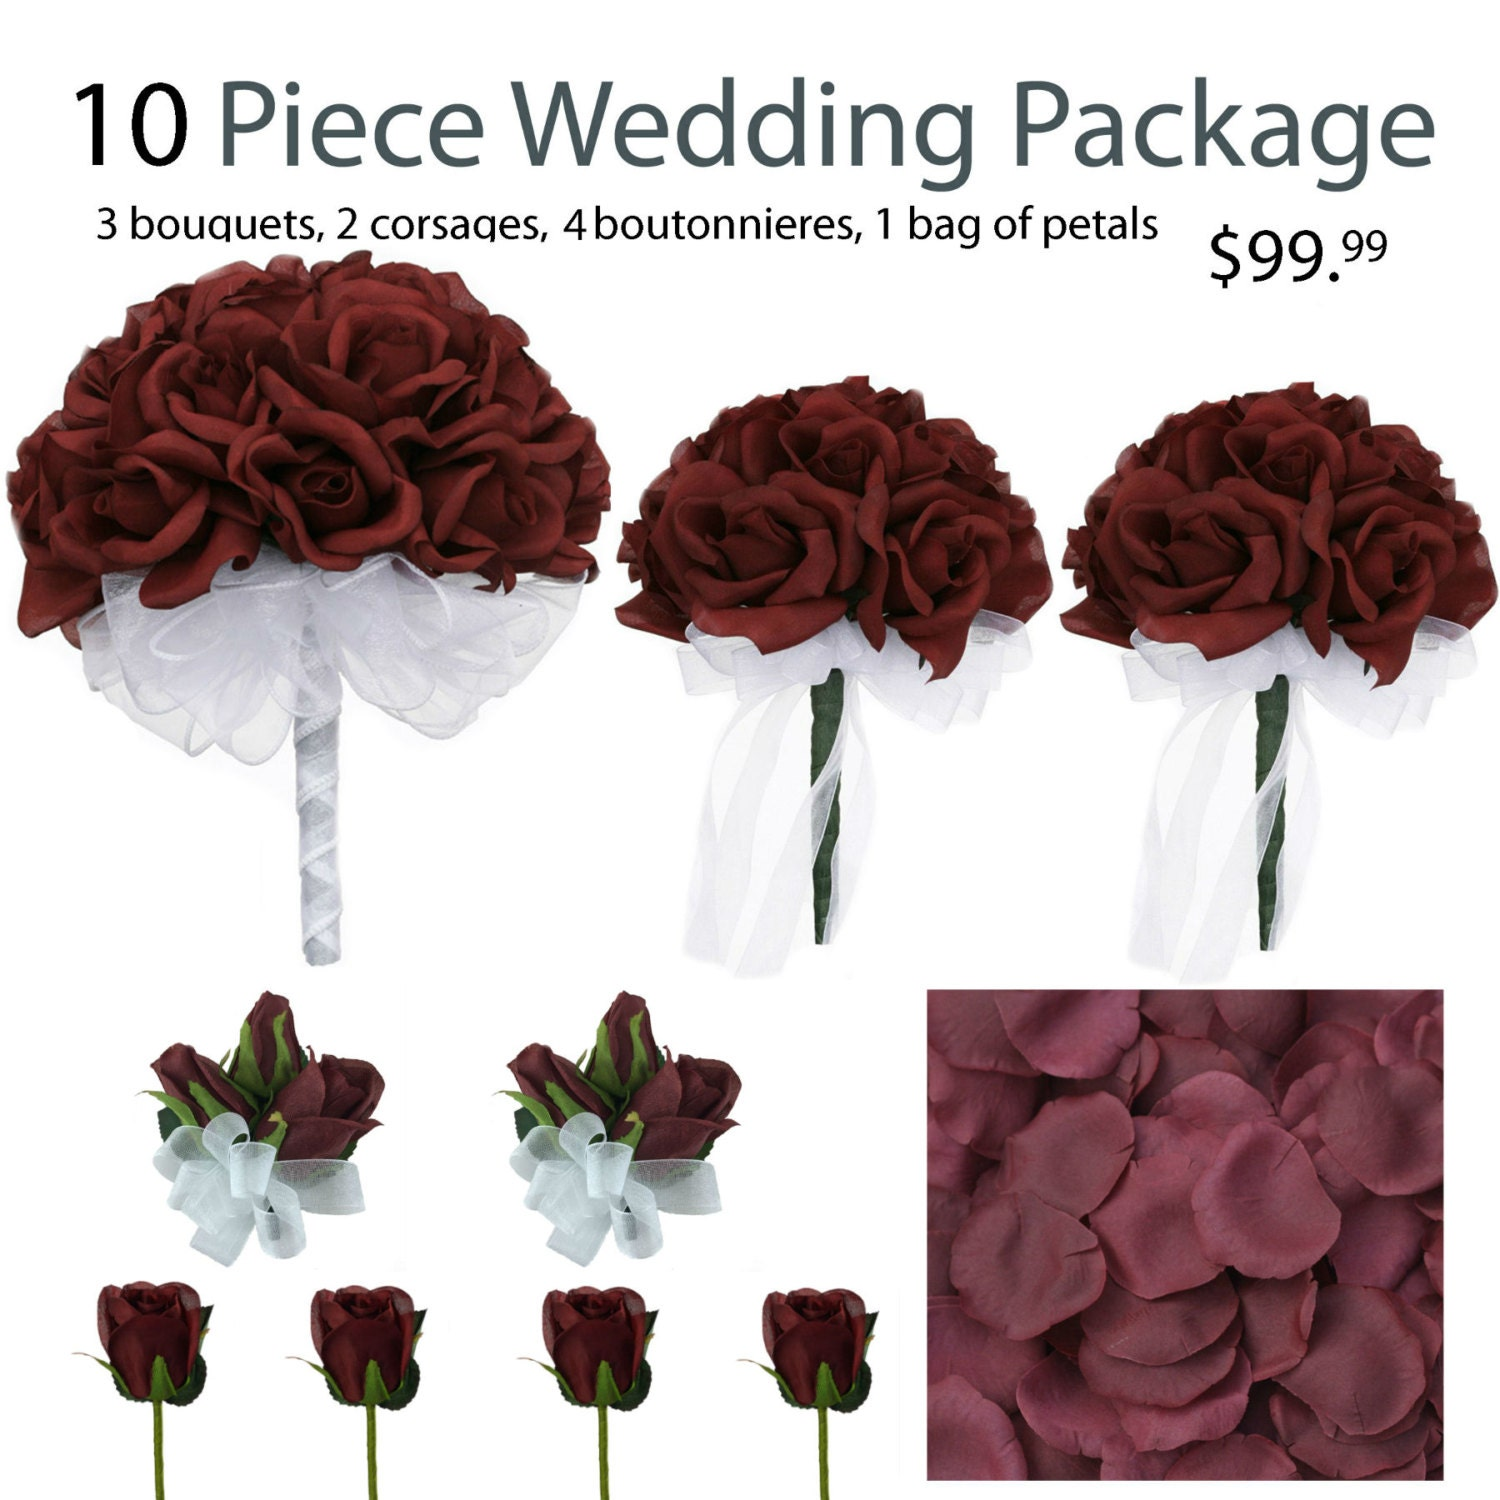 Wedding Flower Packages Cheap: 10 Piece Wedding Package Silk Wedding Flowers Bridal